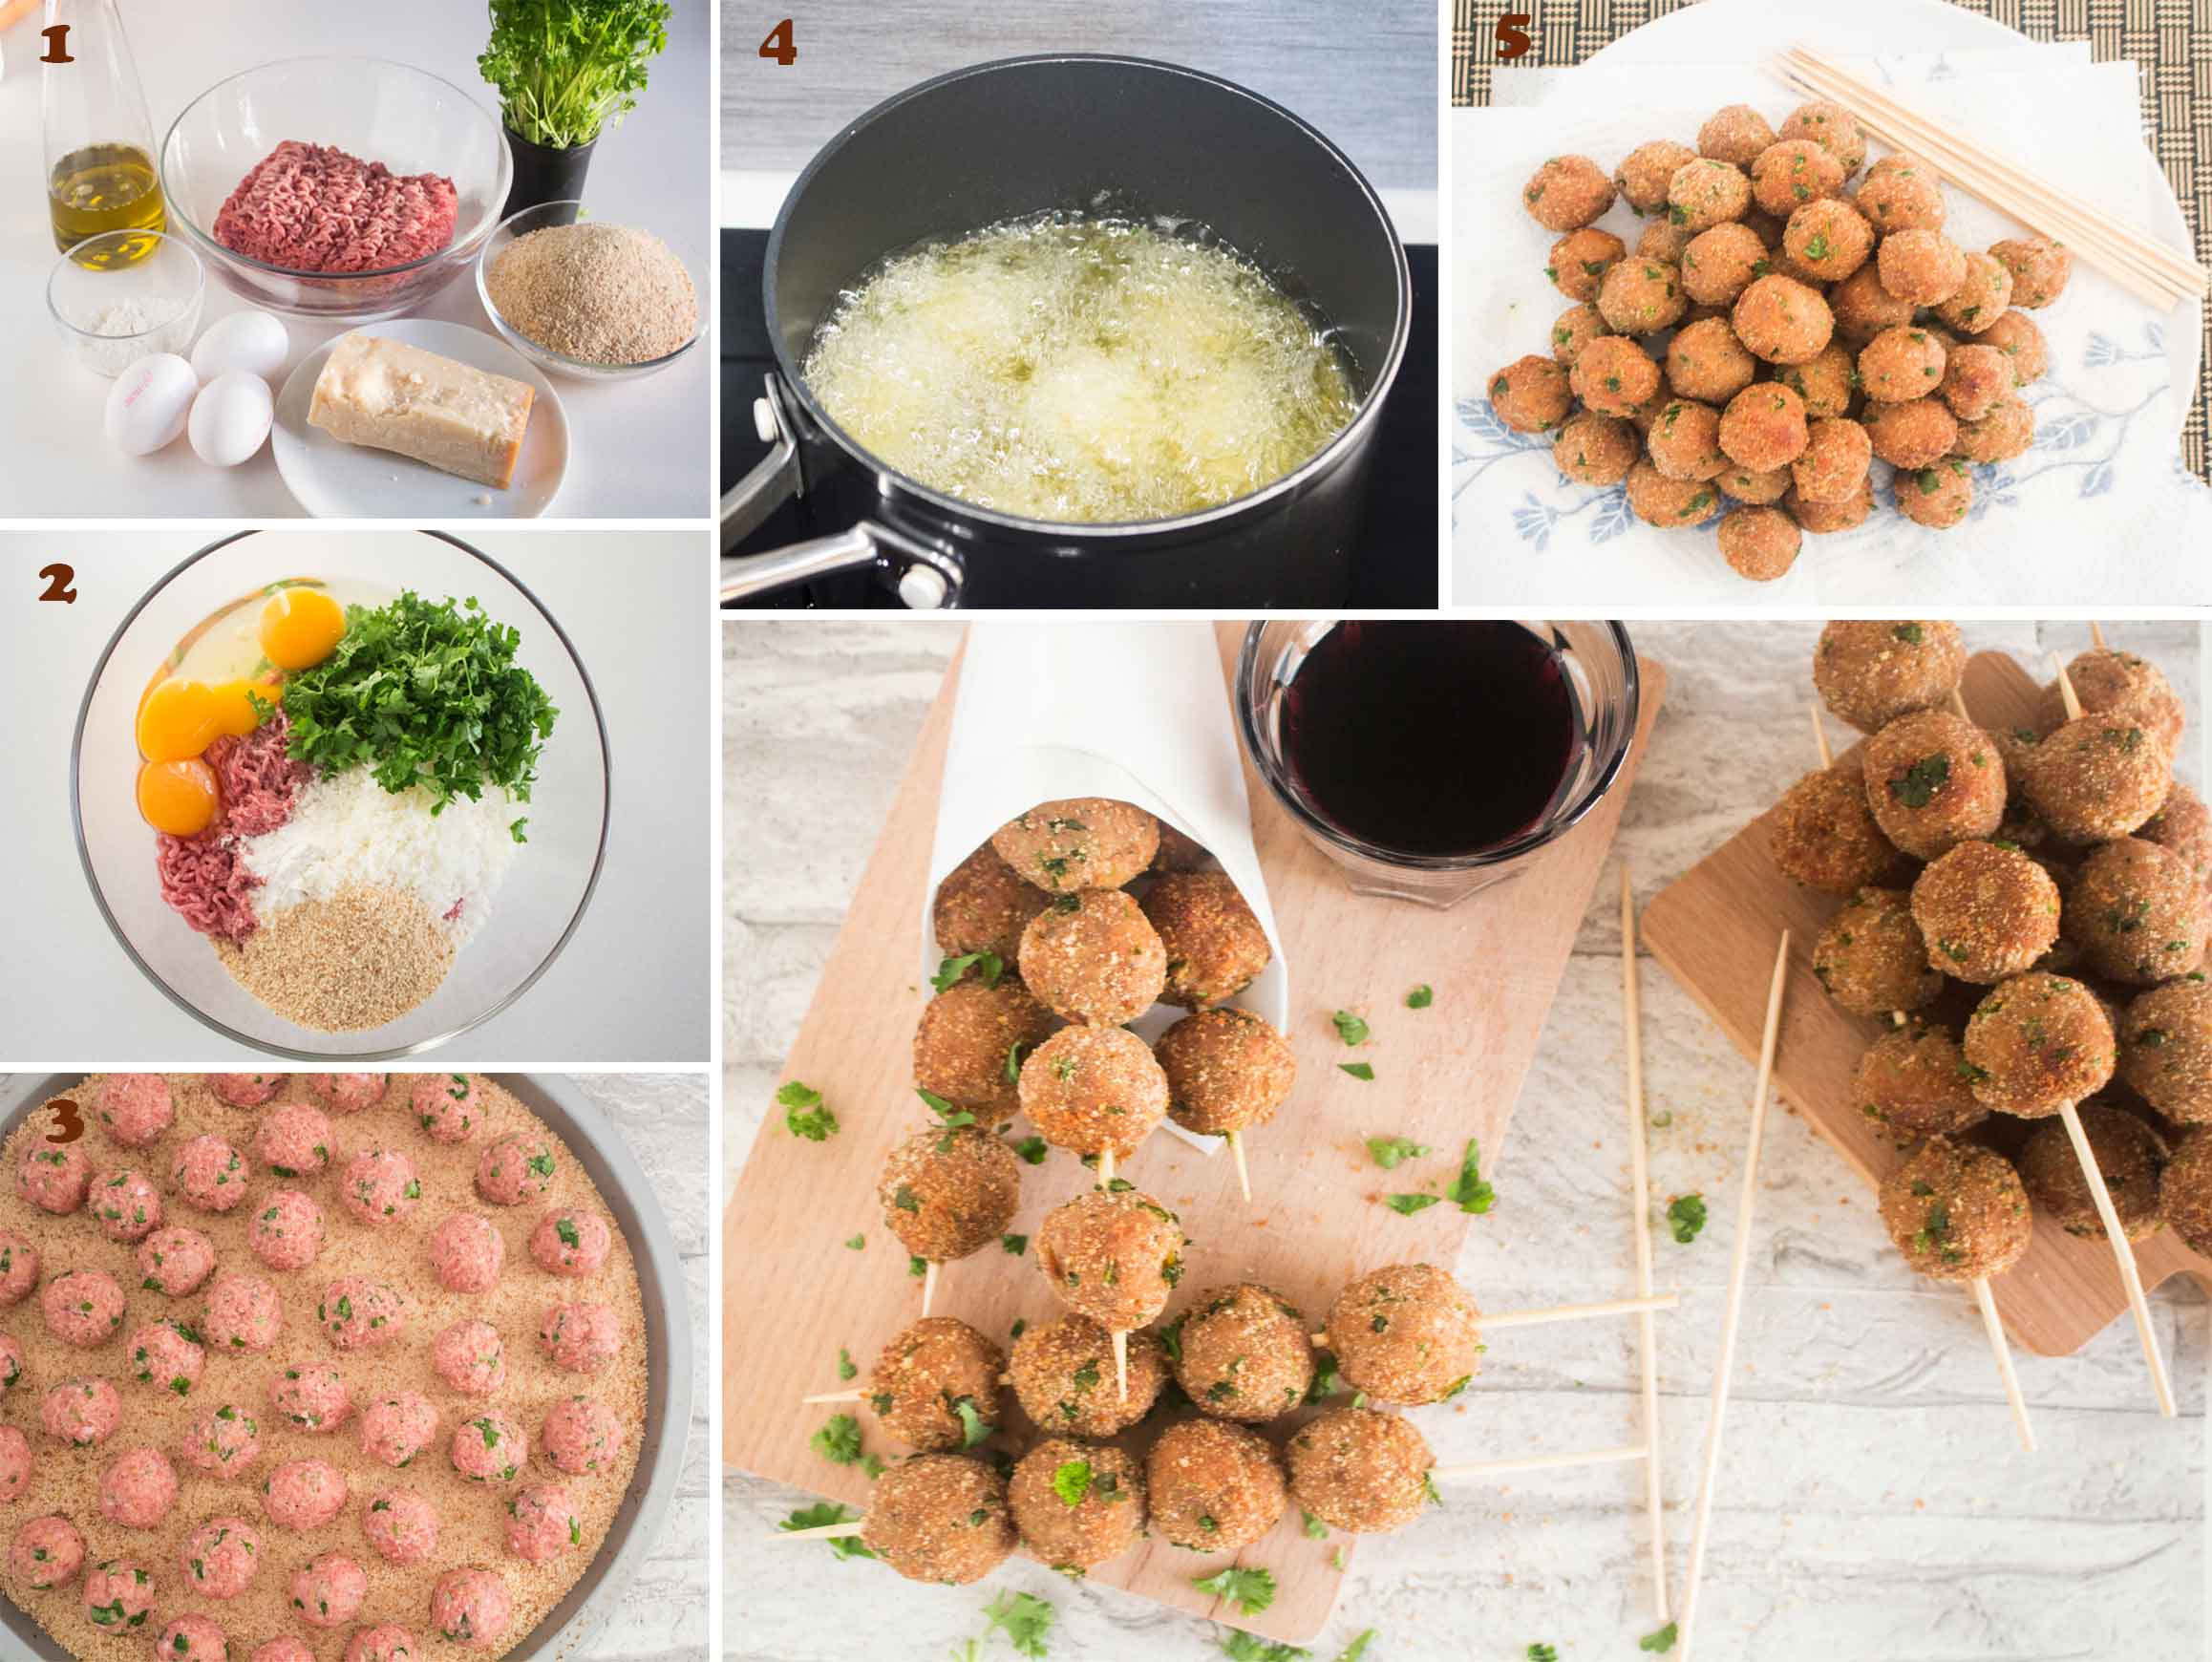 Steps on how to make Mini Meatballs (Polpettine di carne)|foodandjourneys.net